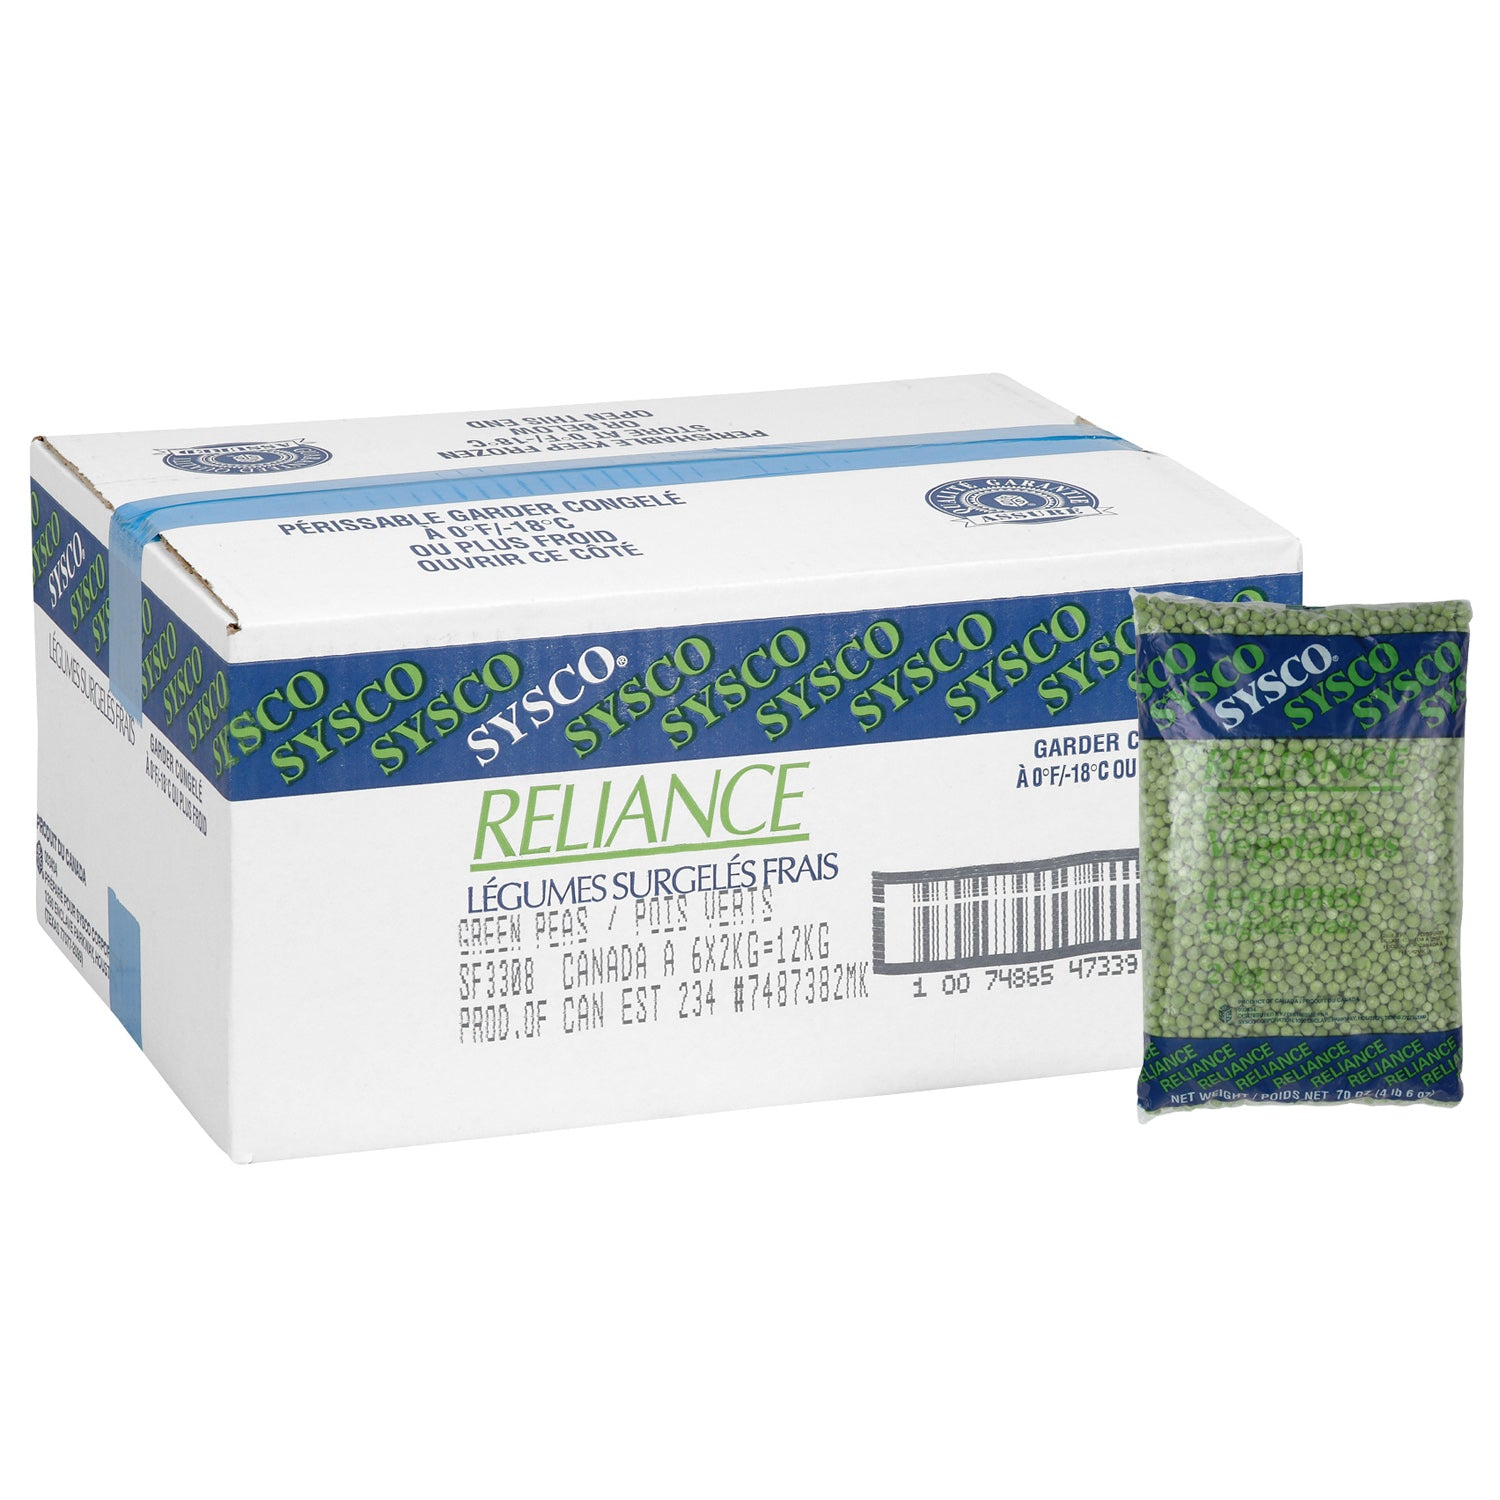 Sysco Reliance Frozen Green Peas 2 kg - 1 Pack [$3.75/kg]